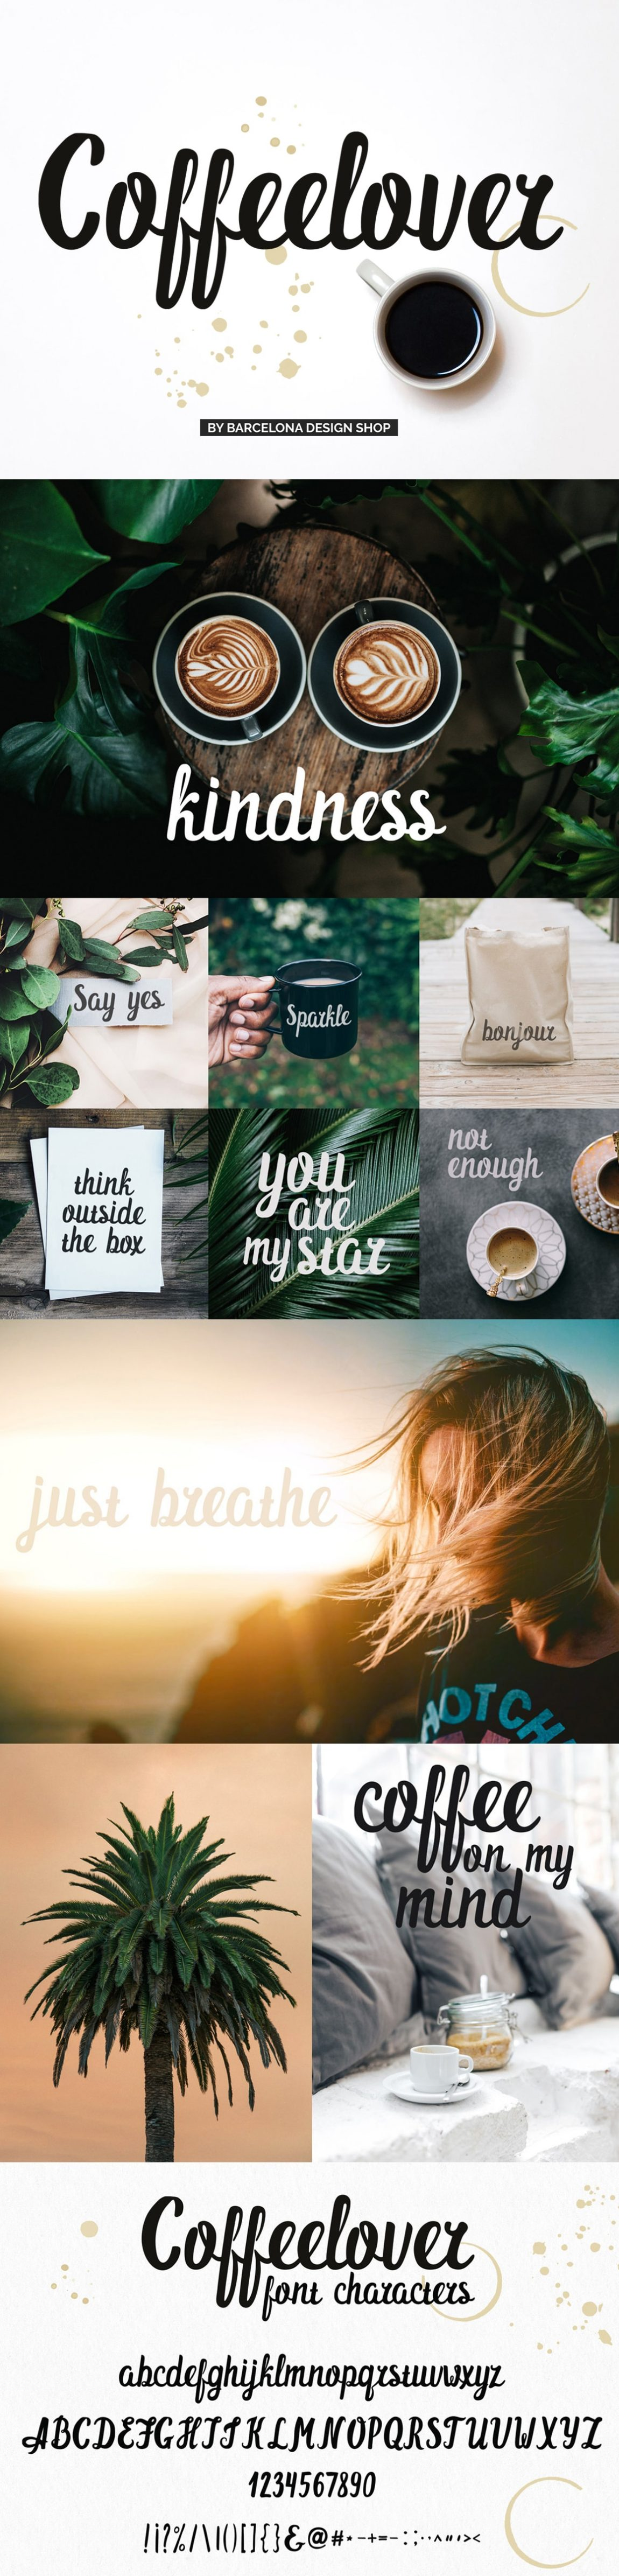 Handwritten Coffeelover brush font